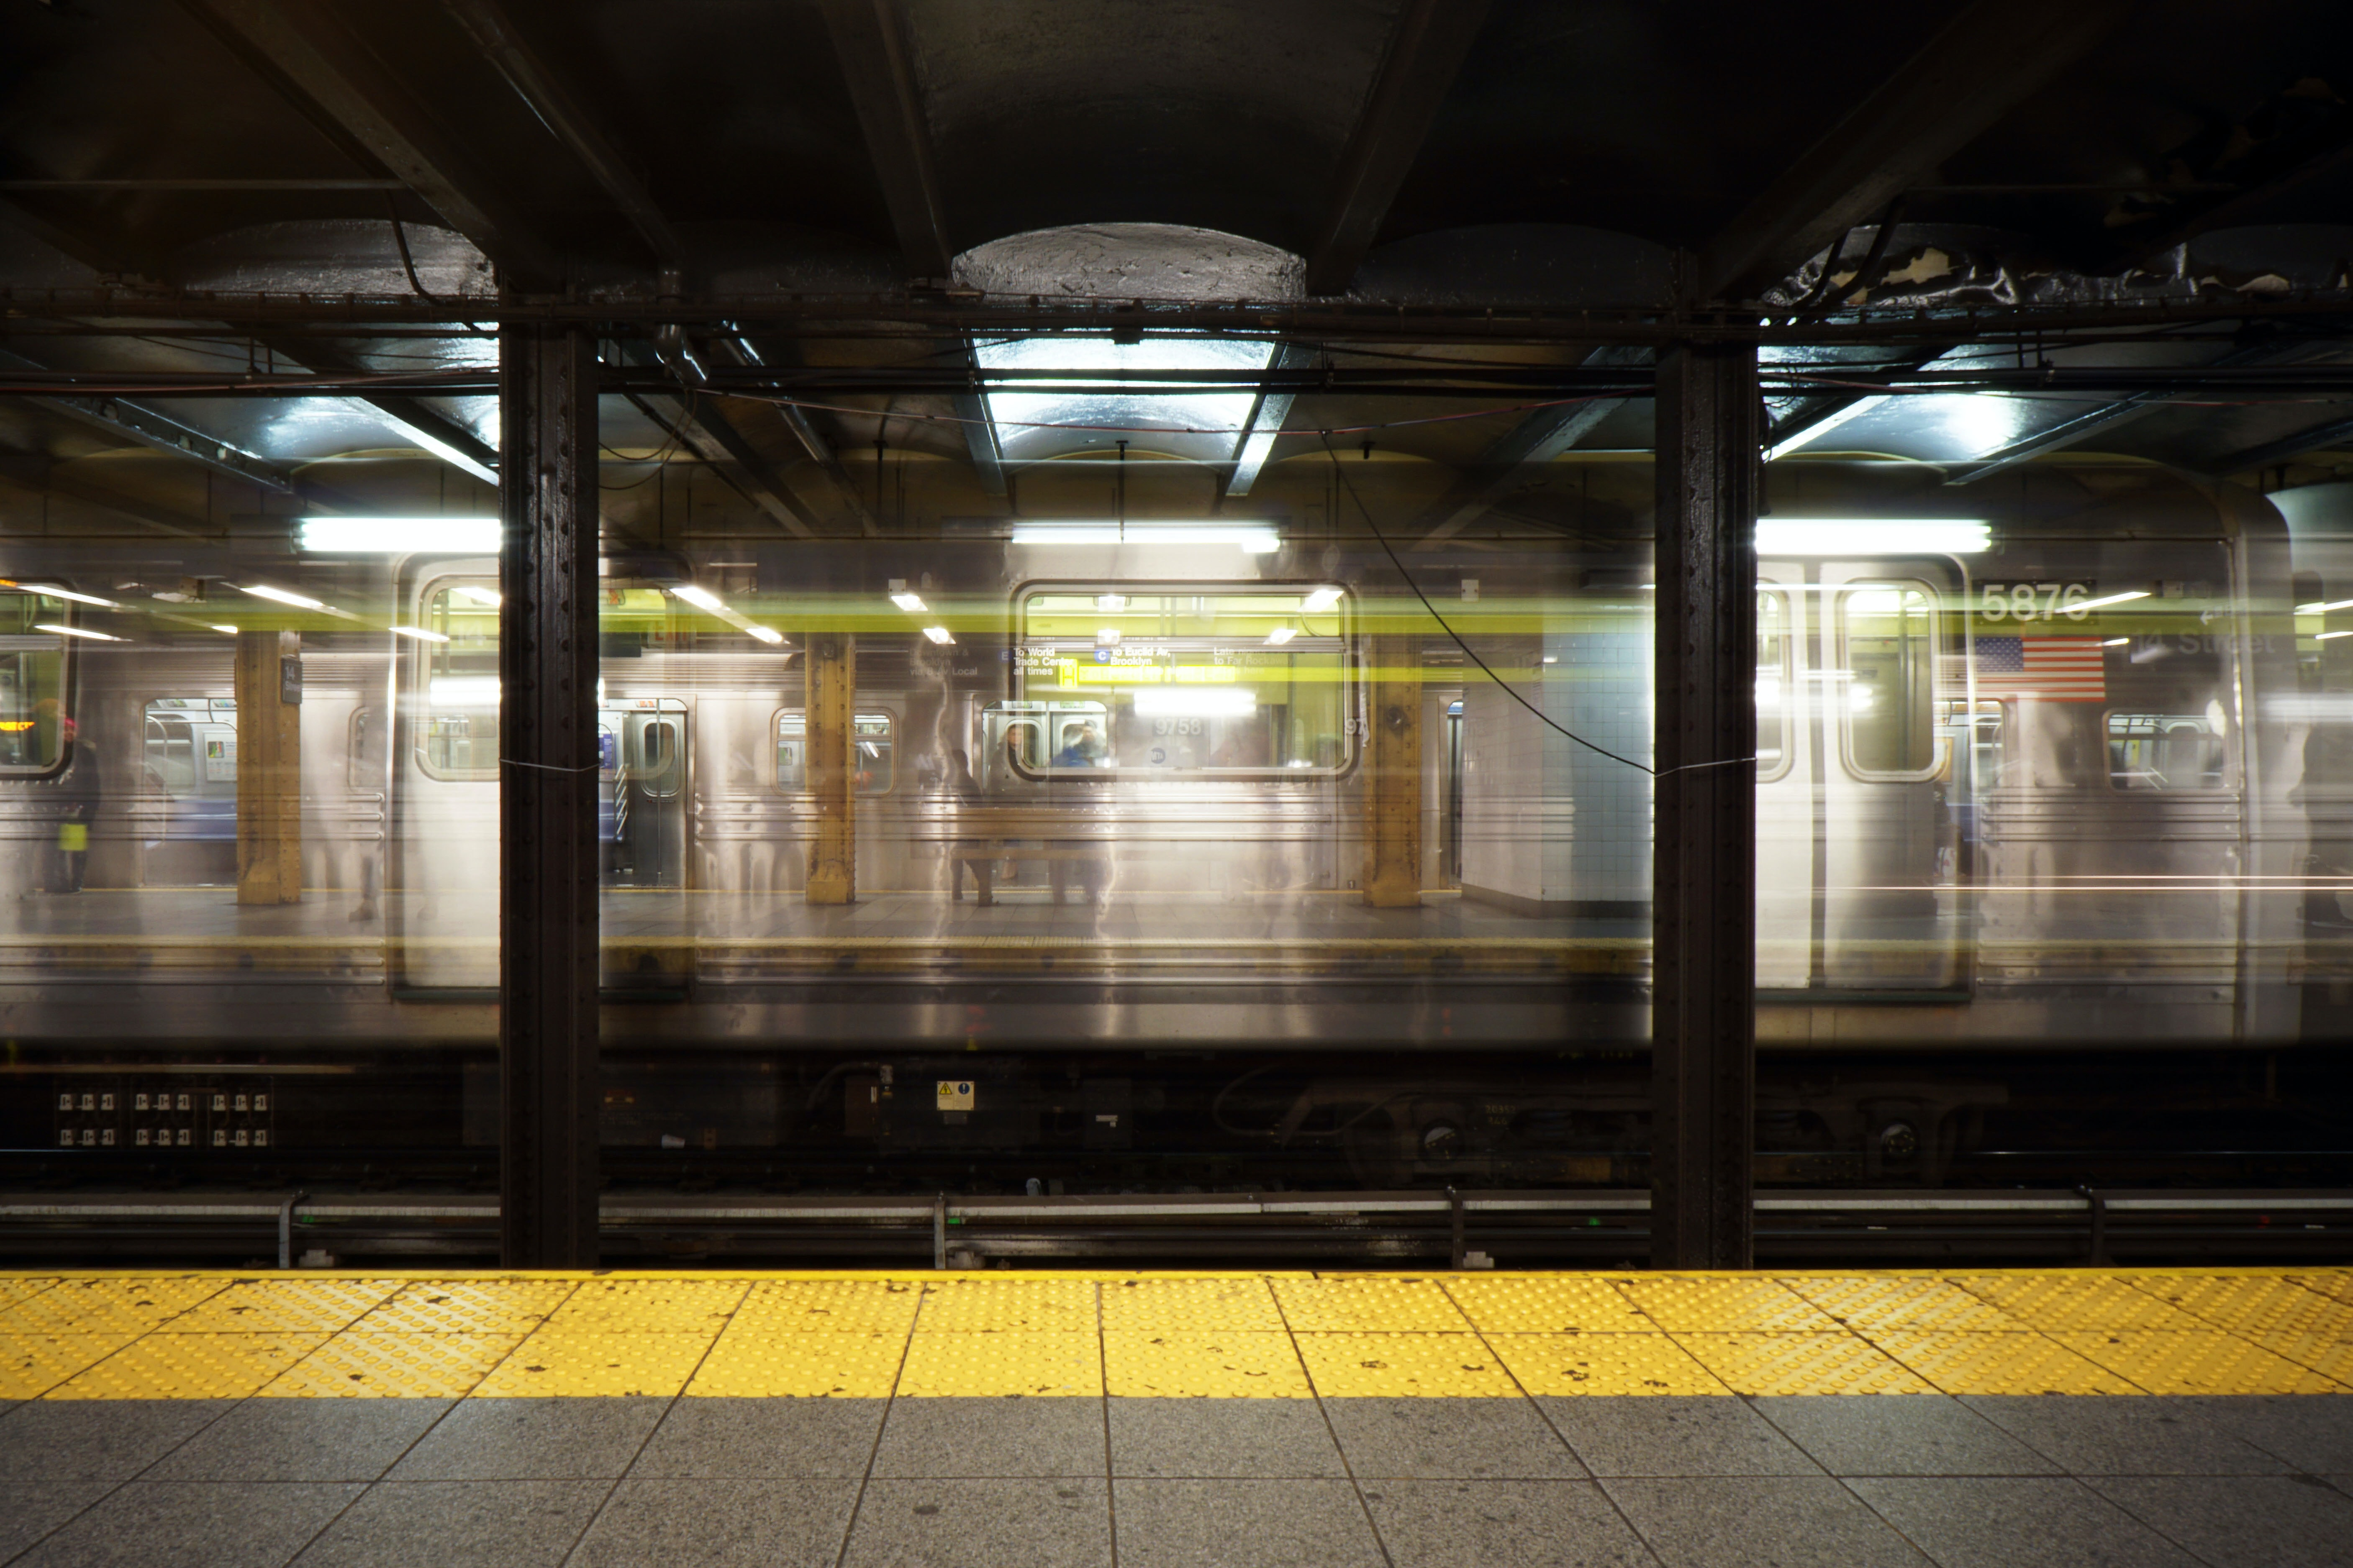 A double-exposure shot of a New York train arriving at a station